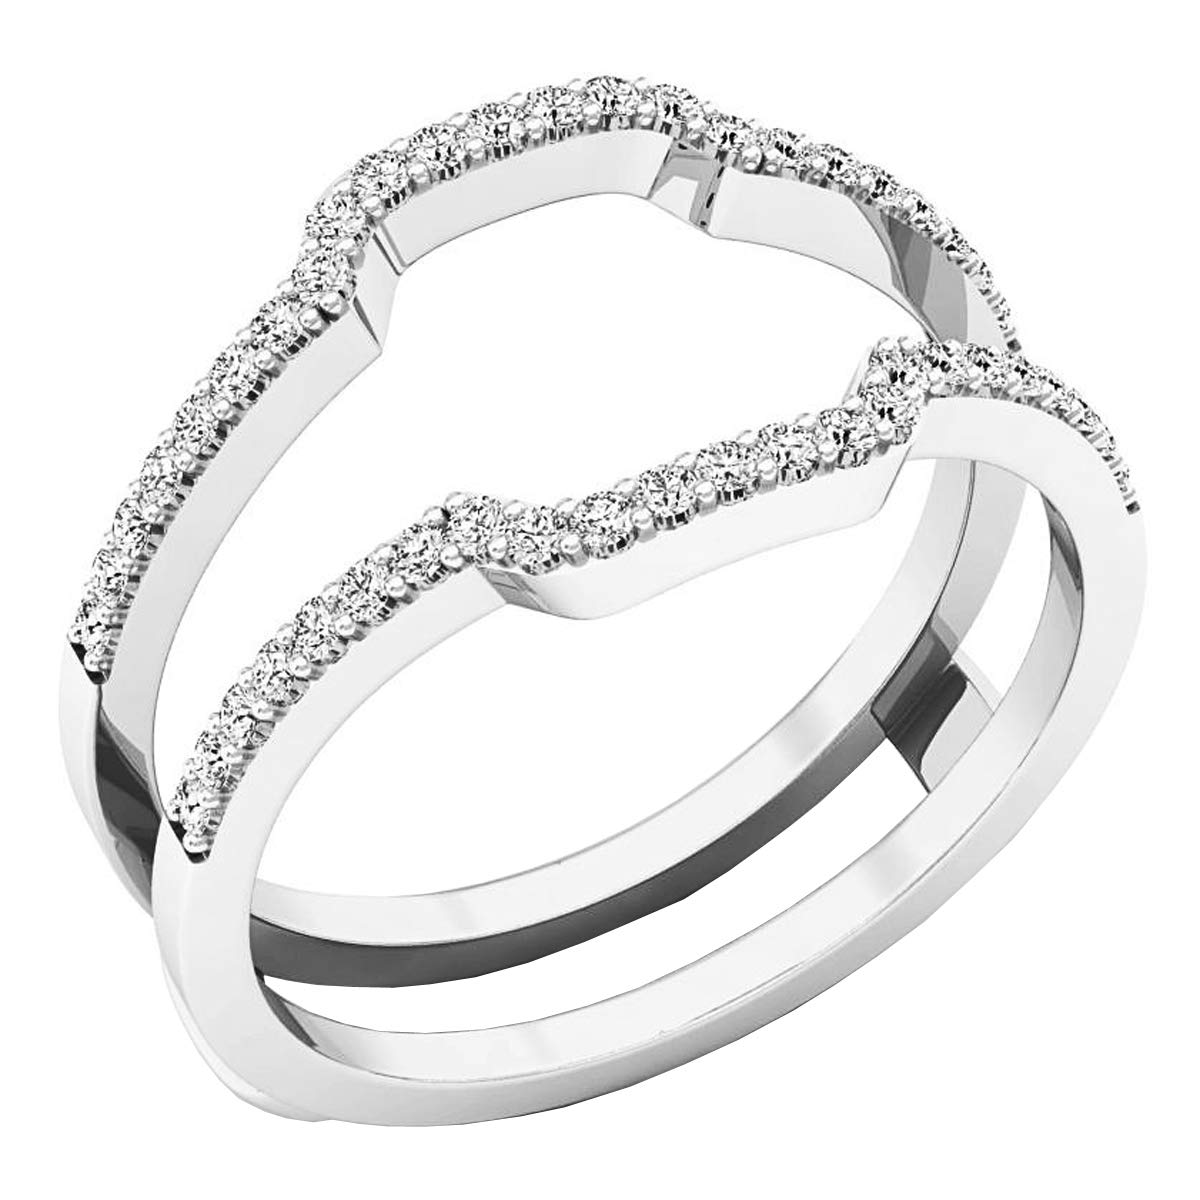 Round White Cubic Zirconia CZ Ladies Wedding Band Enhancer Guard Double Ring, Sterling Silver, Size 7.5 by Dazzlingrock Collection